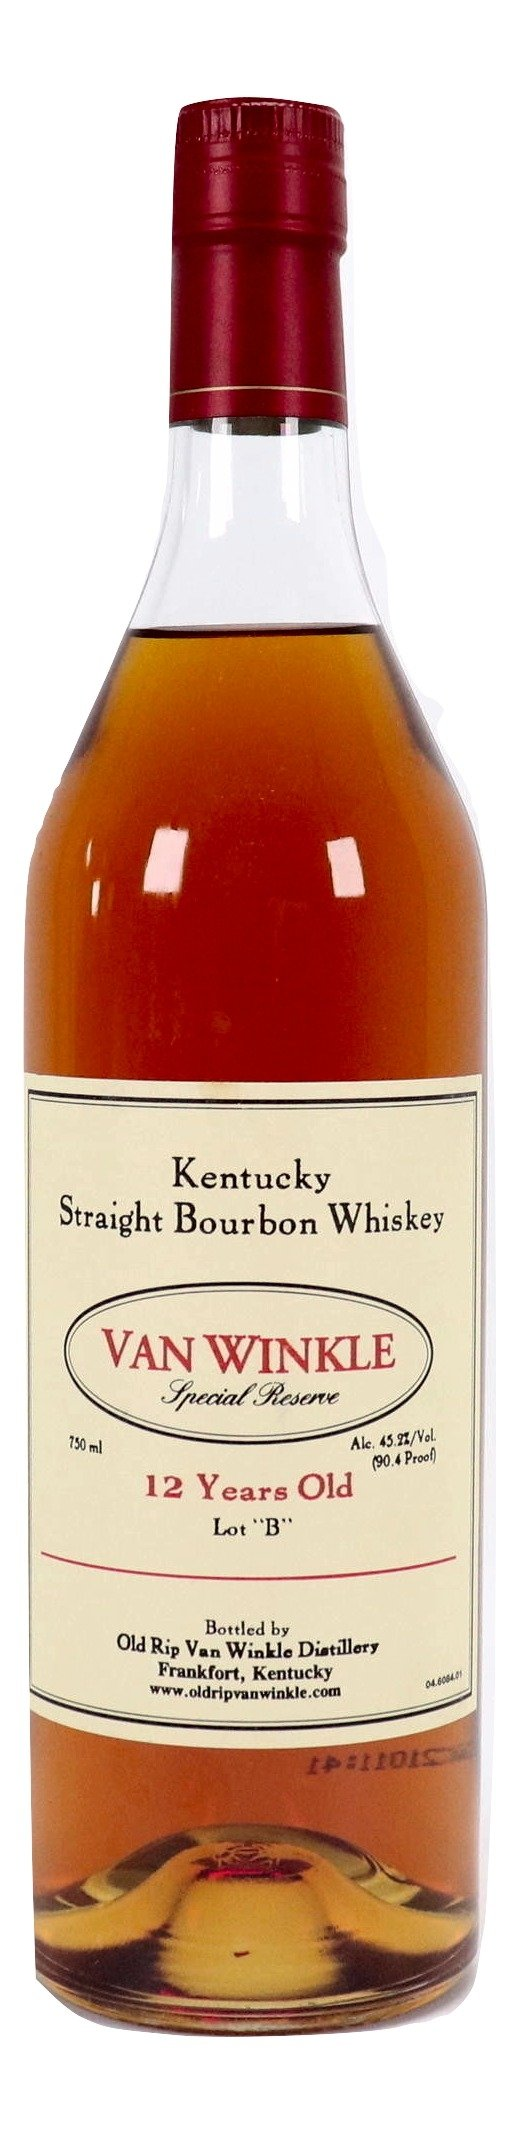 Pappy Van Winkle 12 Year Old Special Reserve - Lot